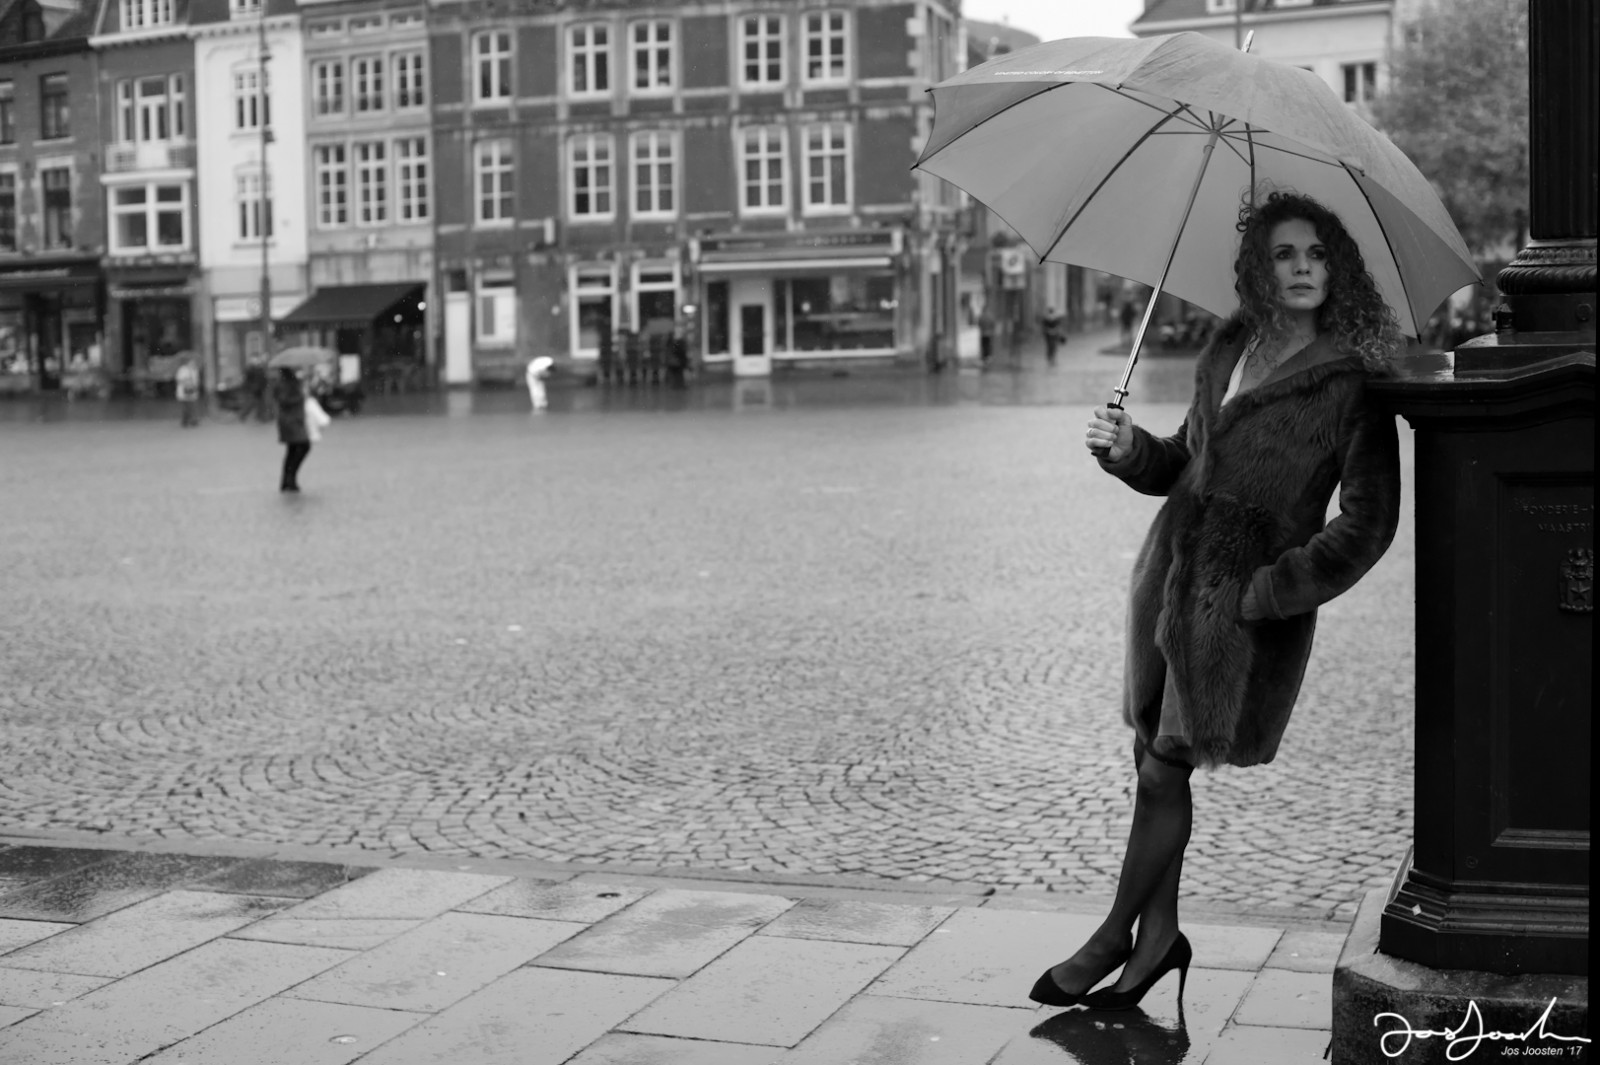 astrid-peter-lindbergh-woman-with-umbrella-made-bij-jos-joosten